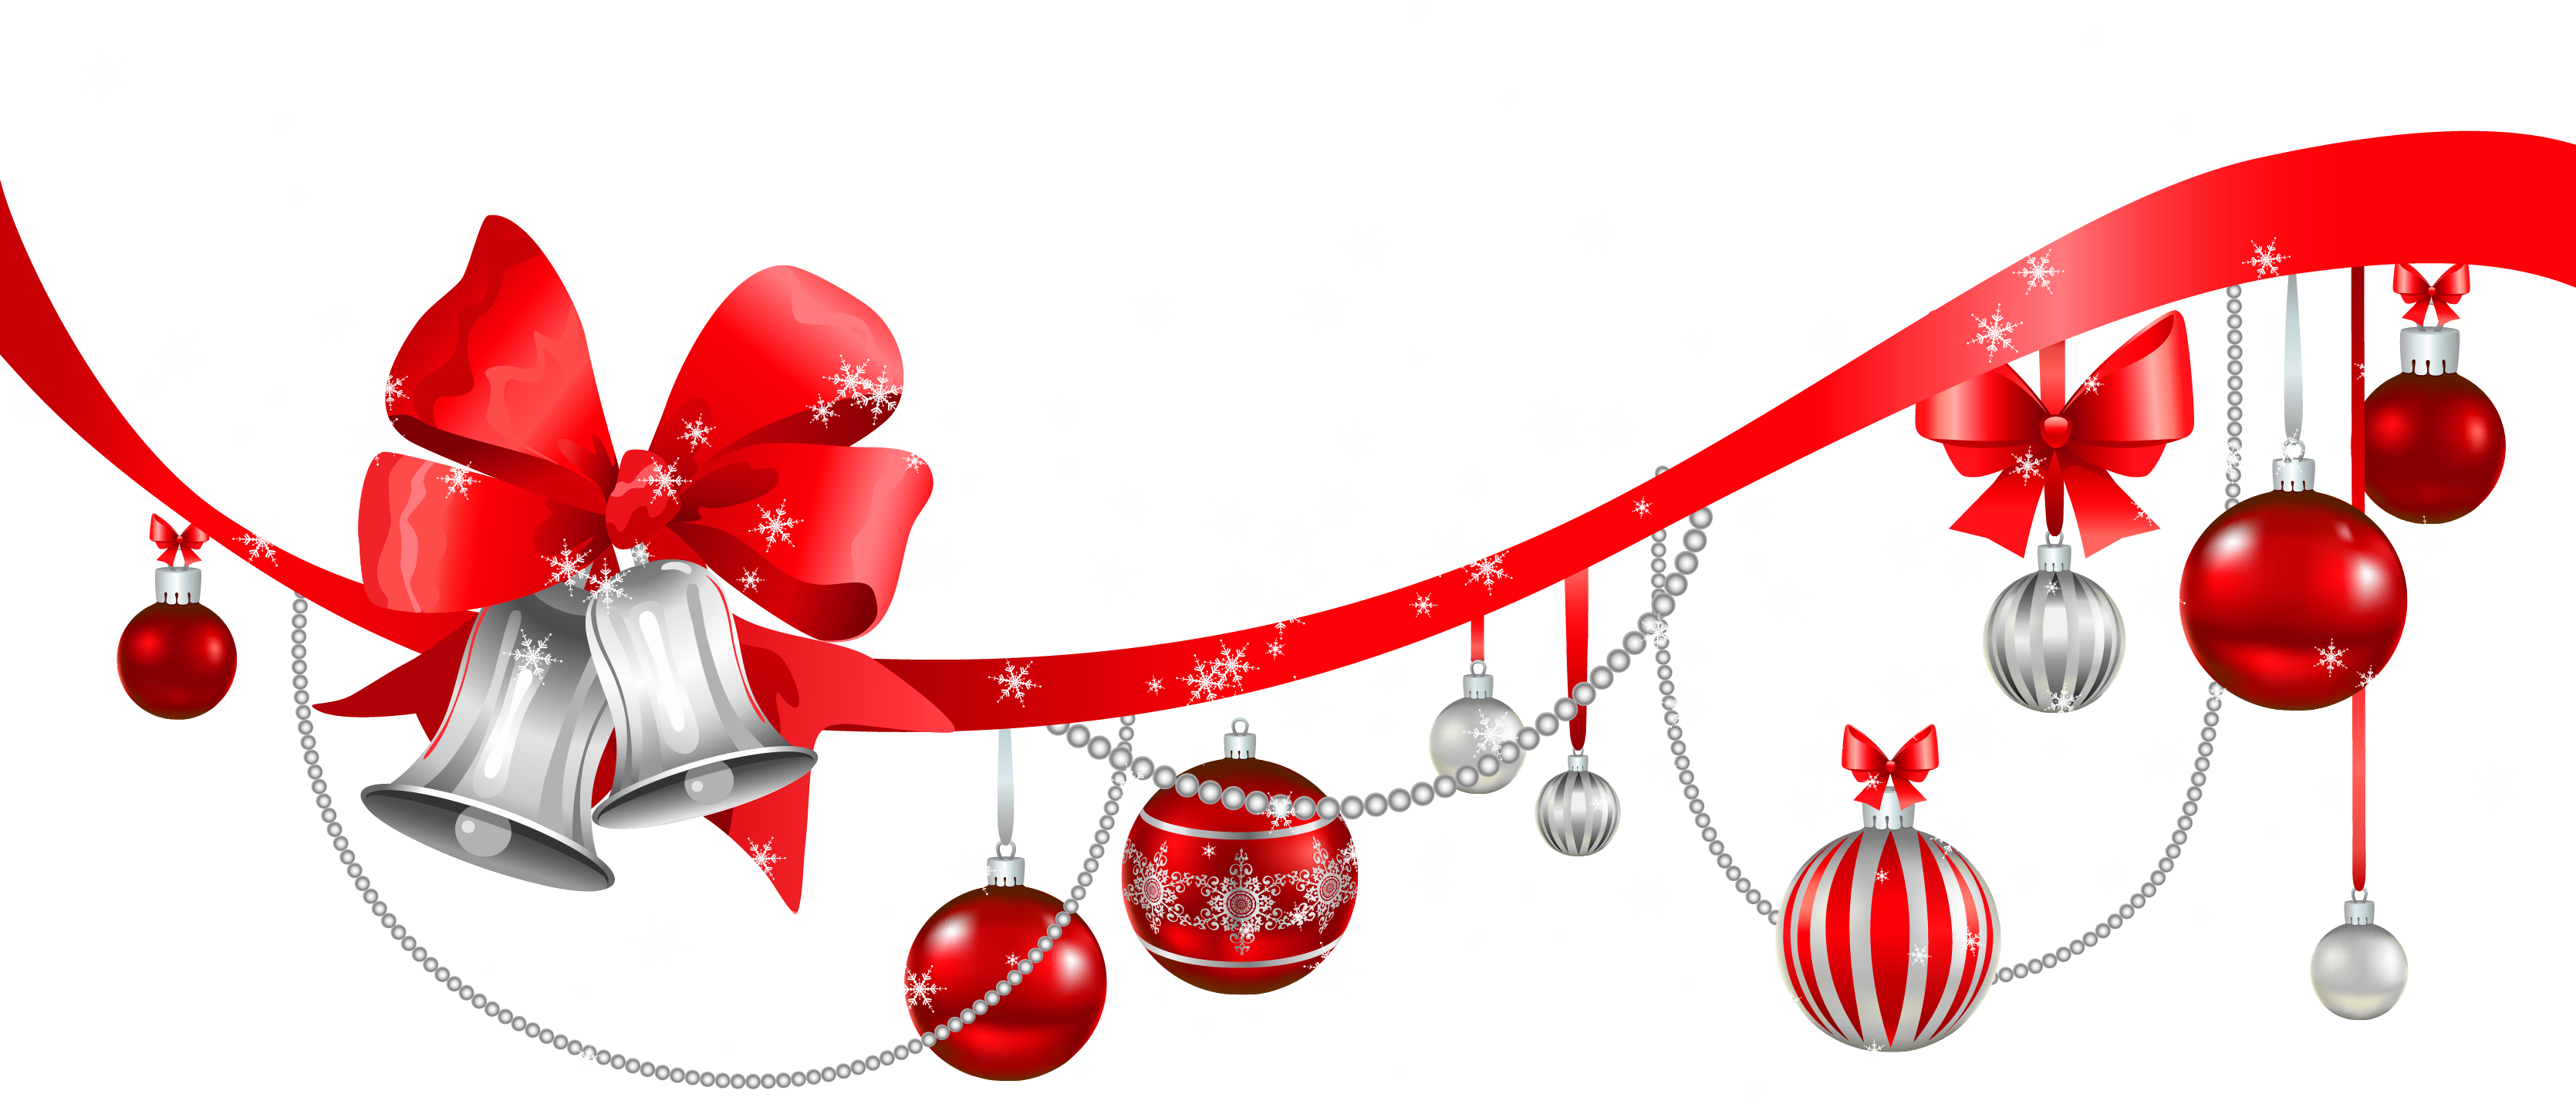 Christmas clipart transparent background Clipart PNG images download BBCpersian7